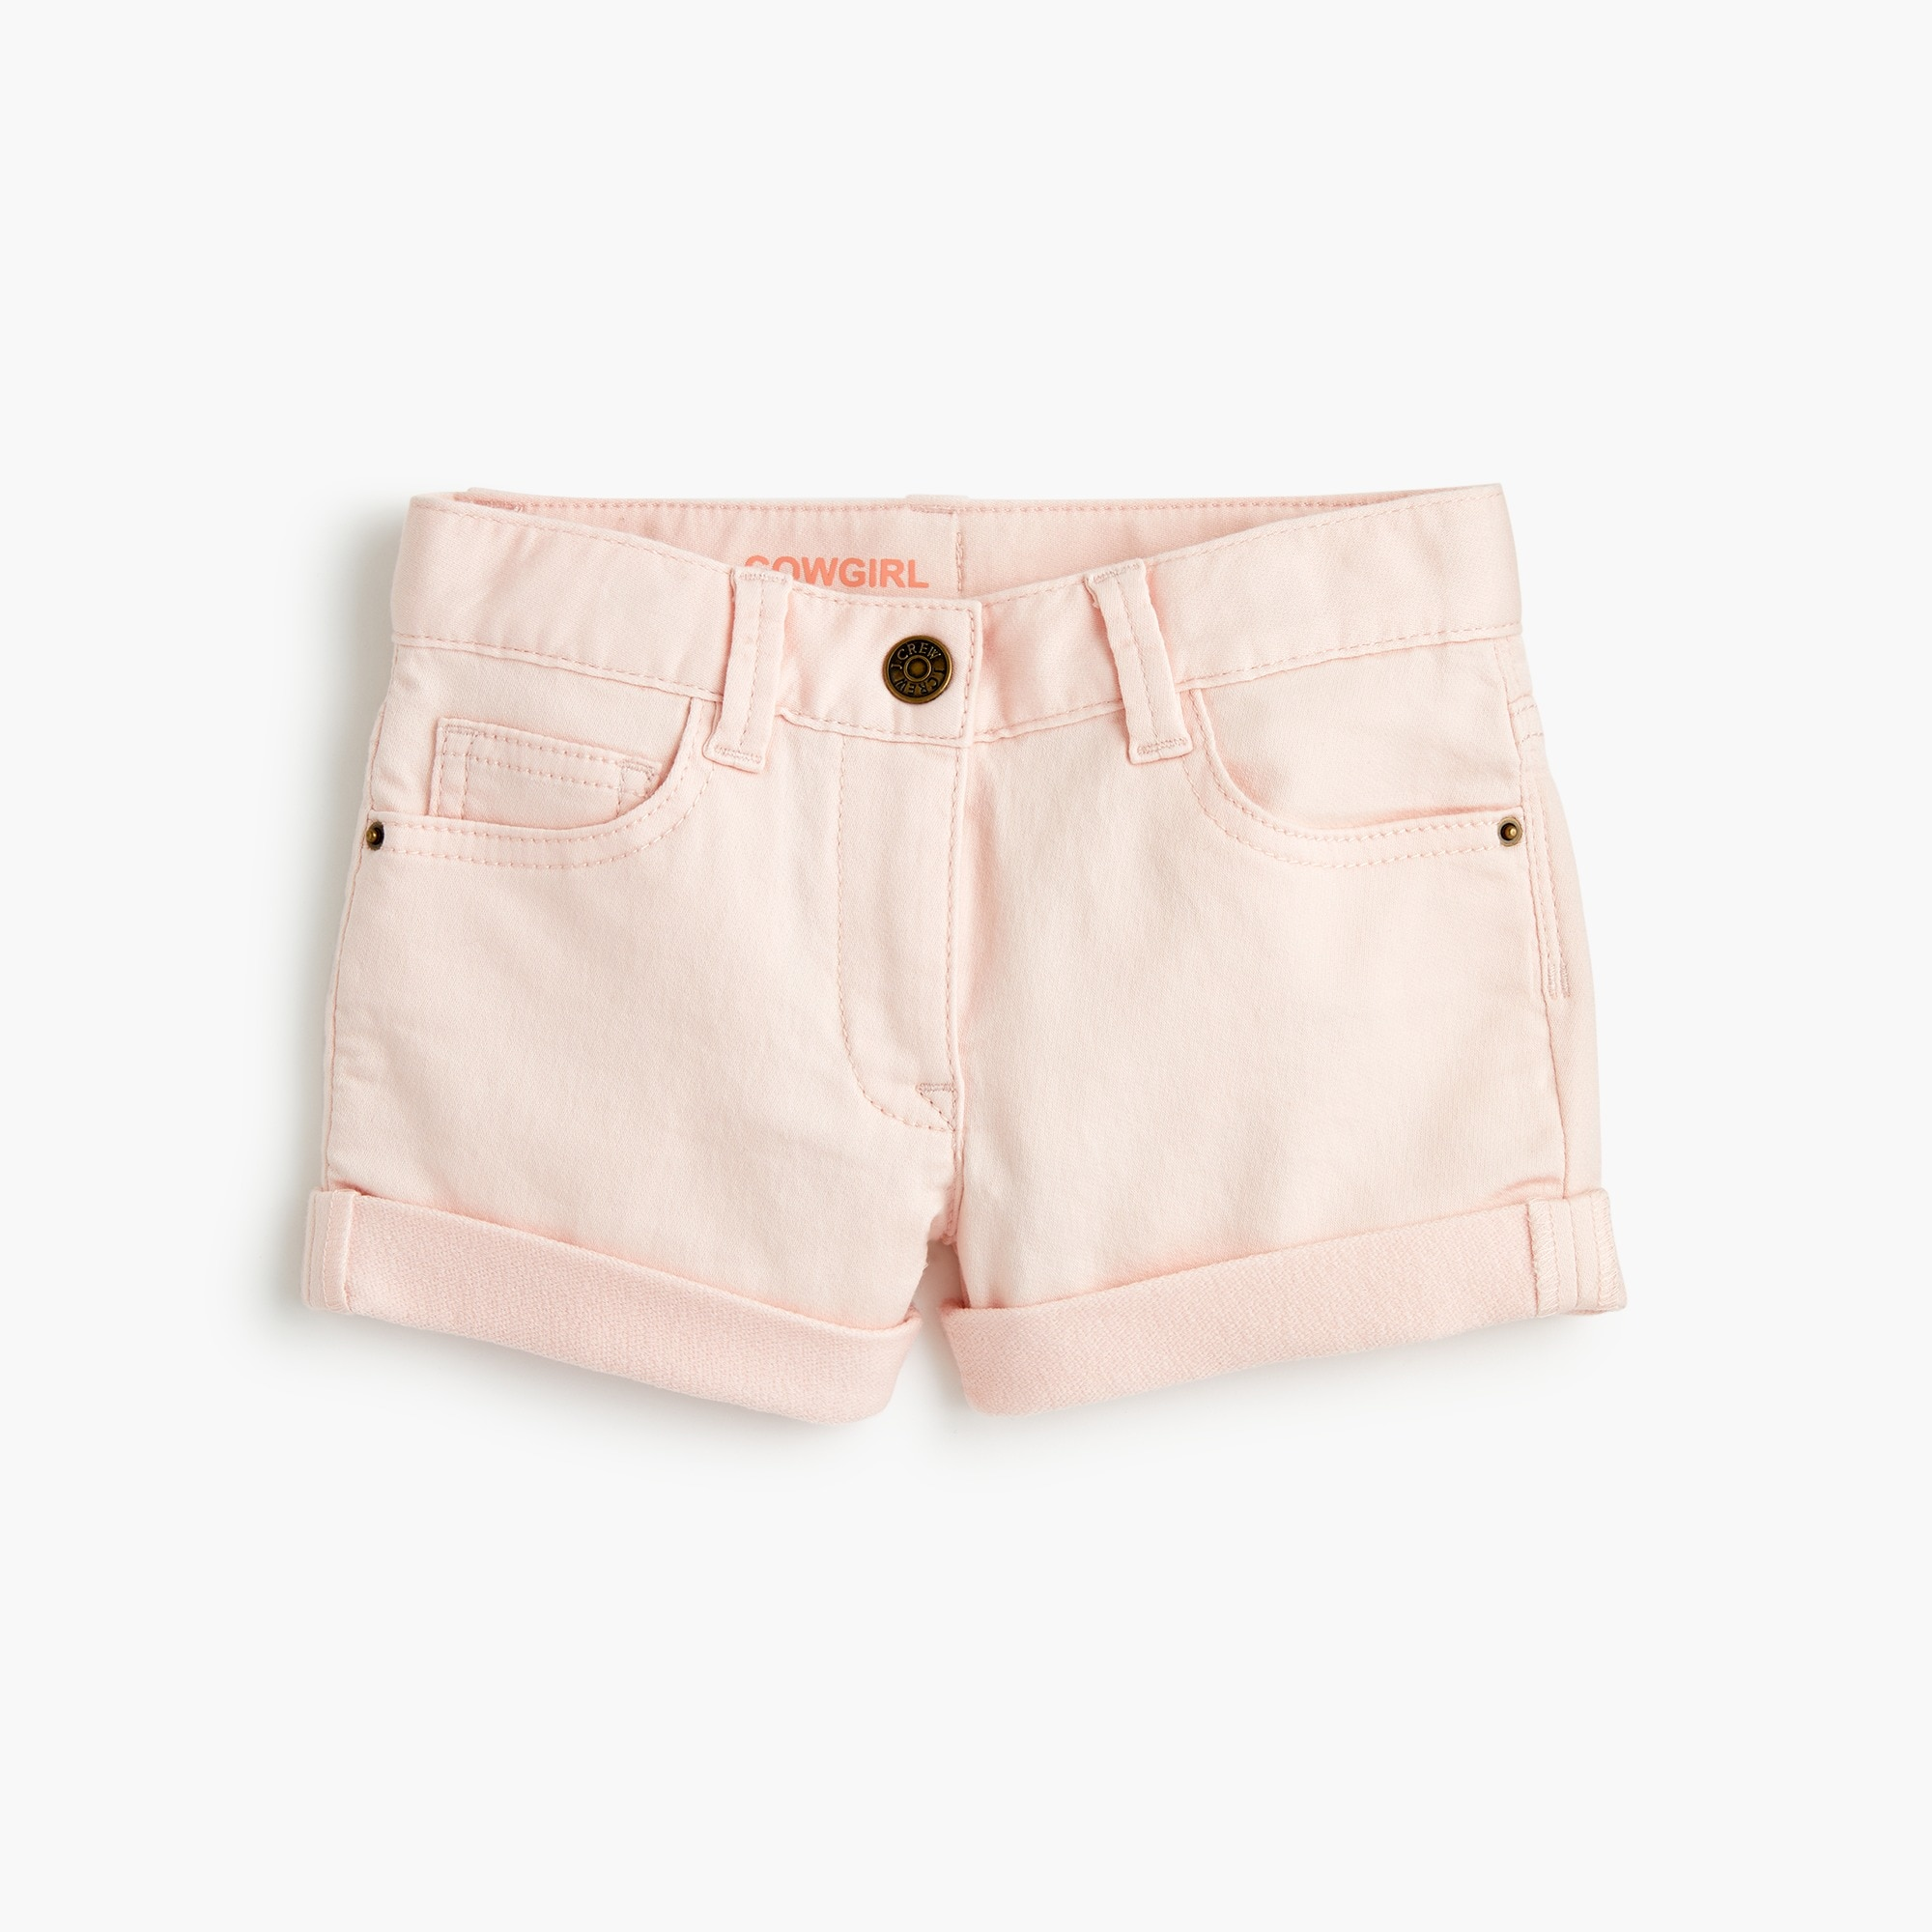 Girls' runaround jean short girl denim c